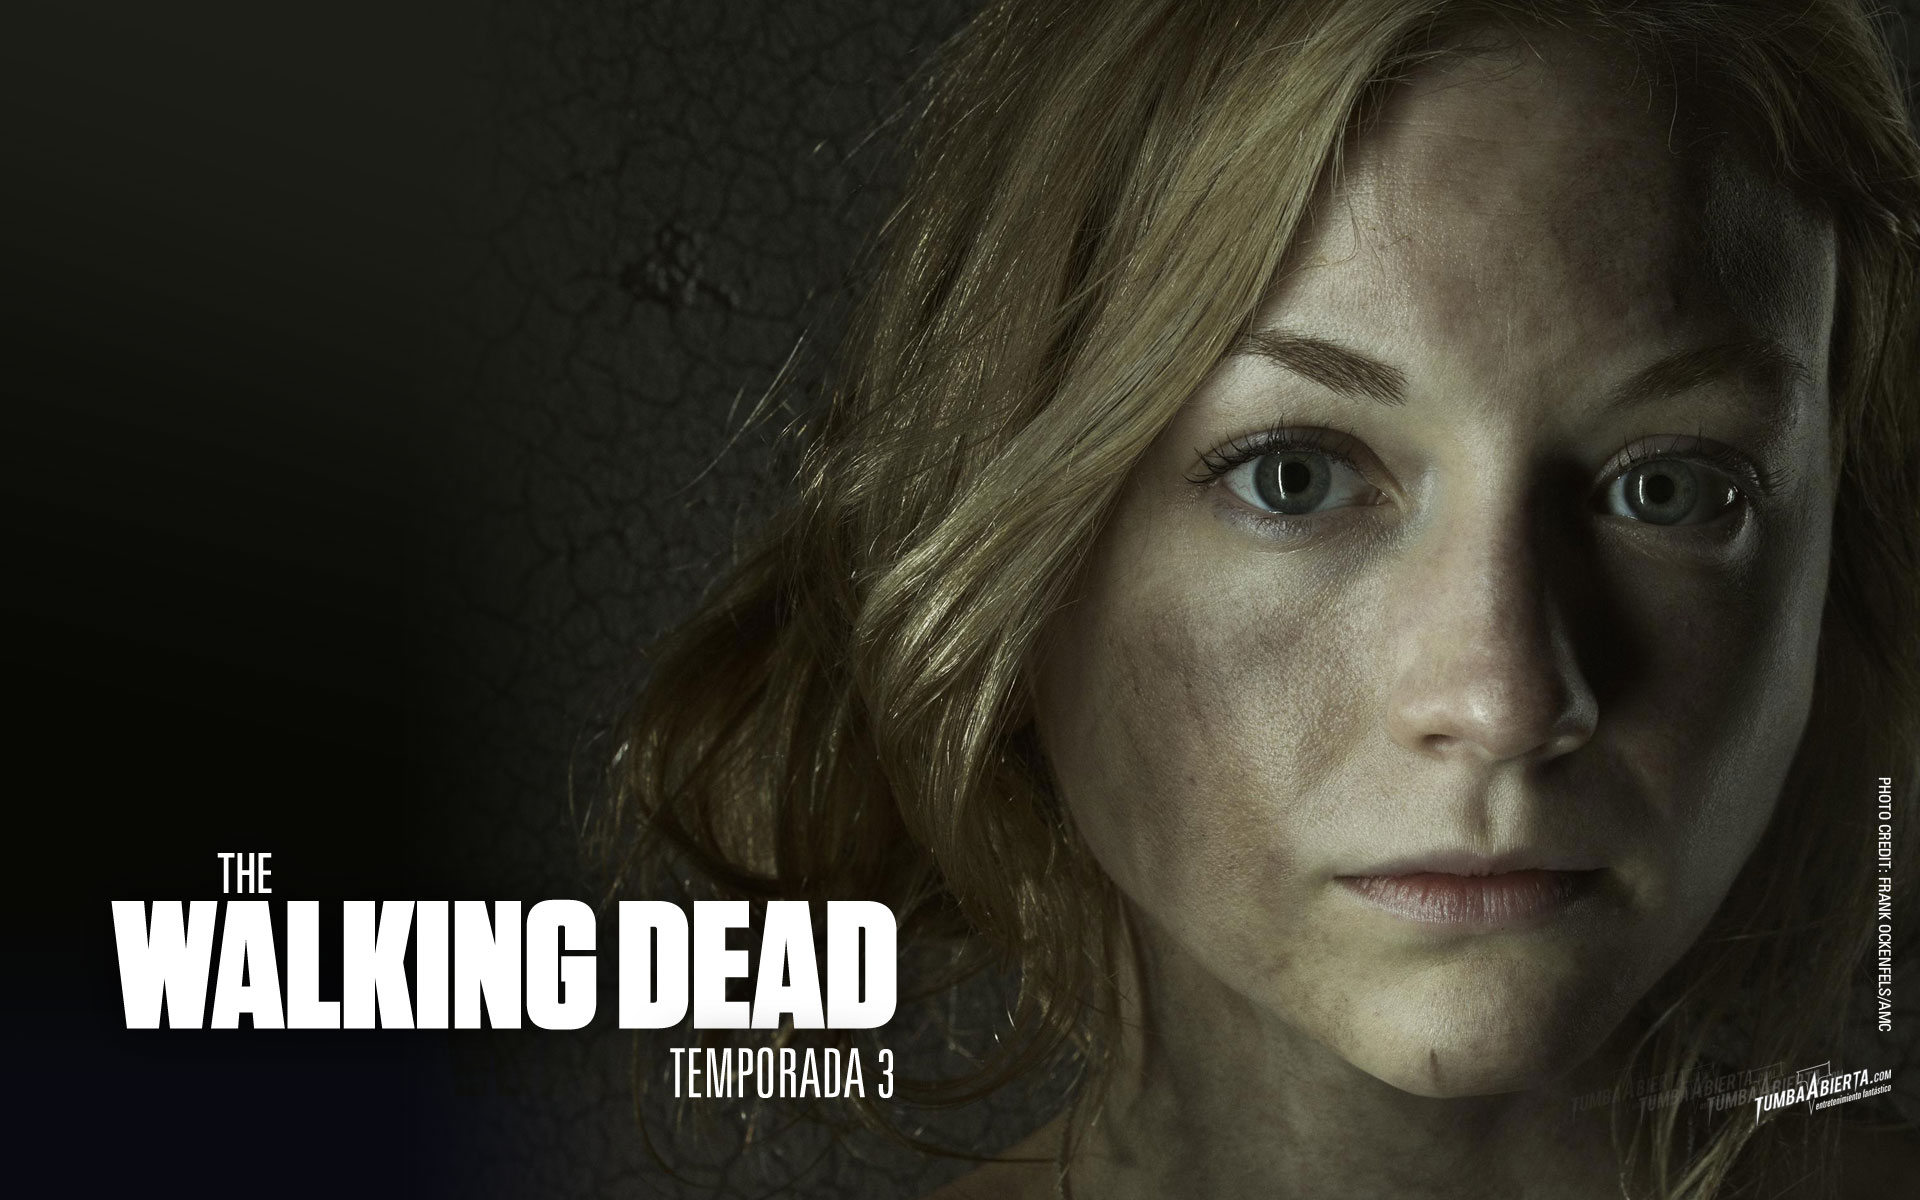 Wallpaper.- The walking dead temporada 3